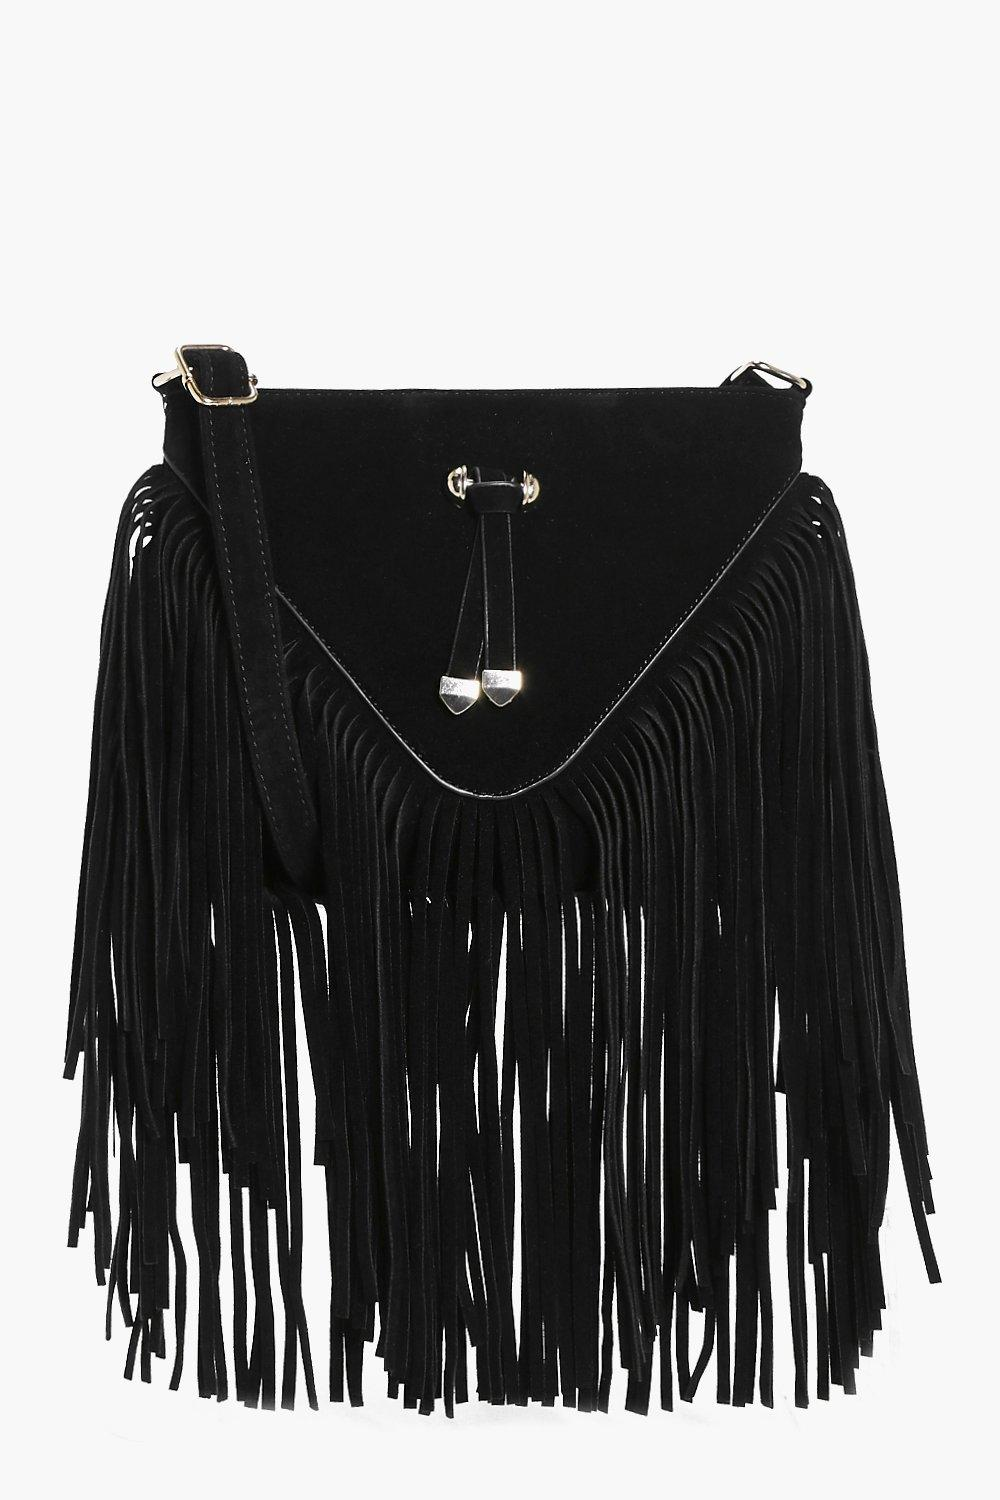 Fringed Suedette Cross Body Bag - black - Natalia